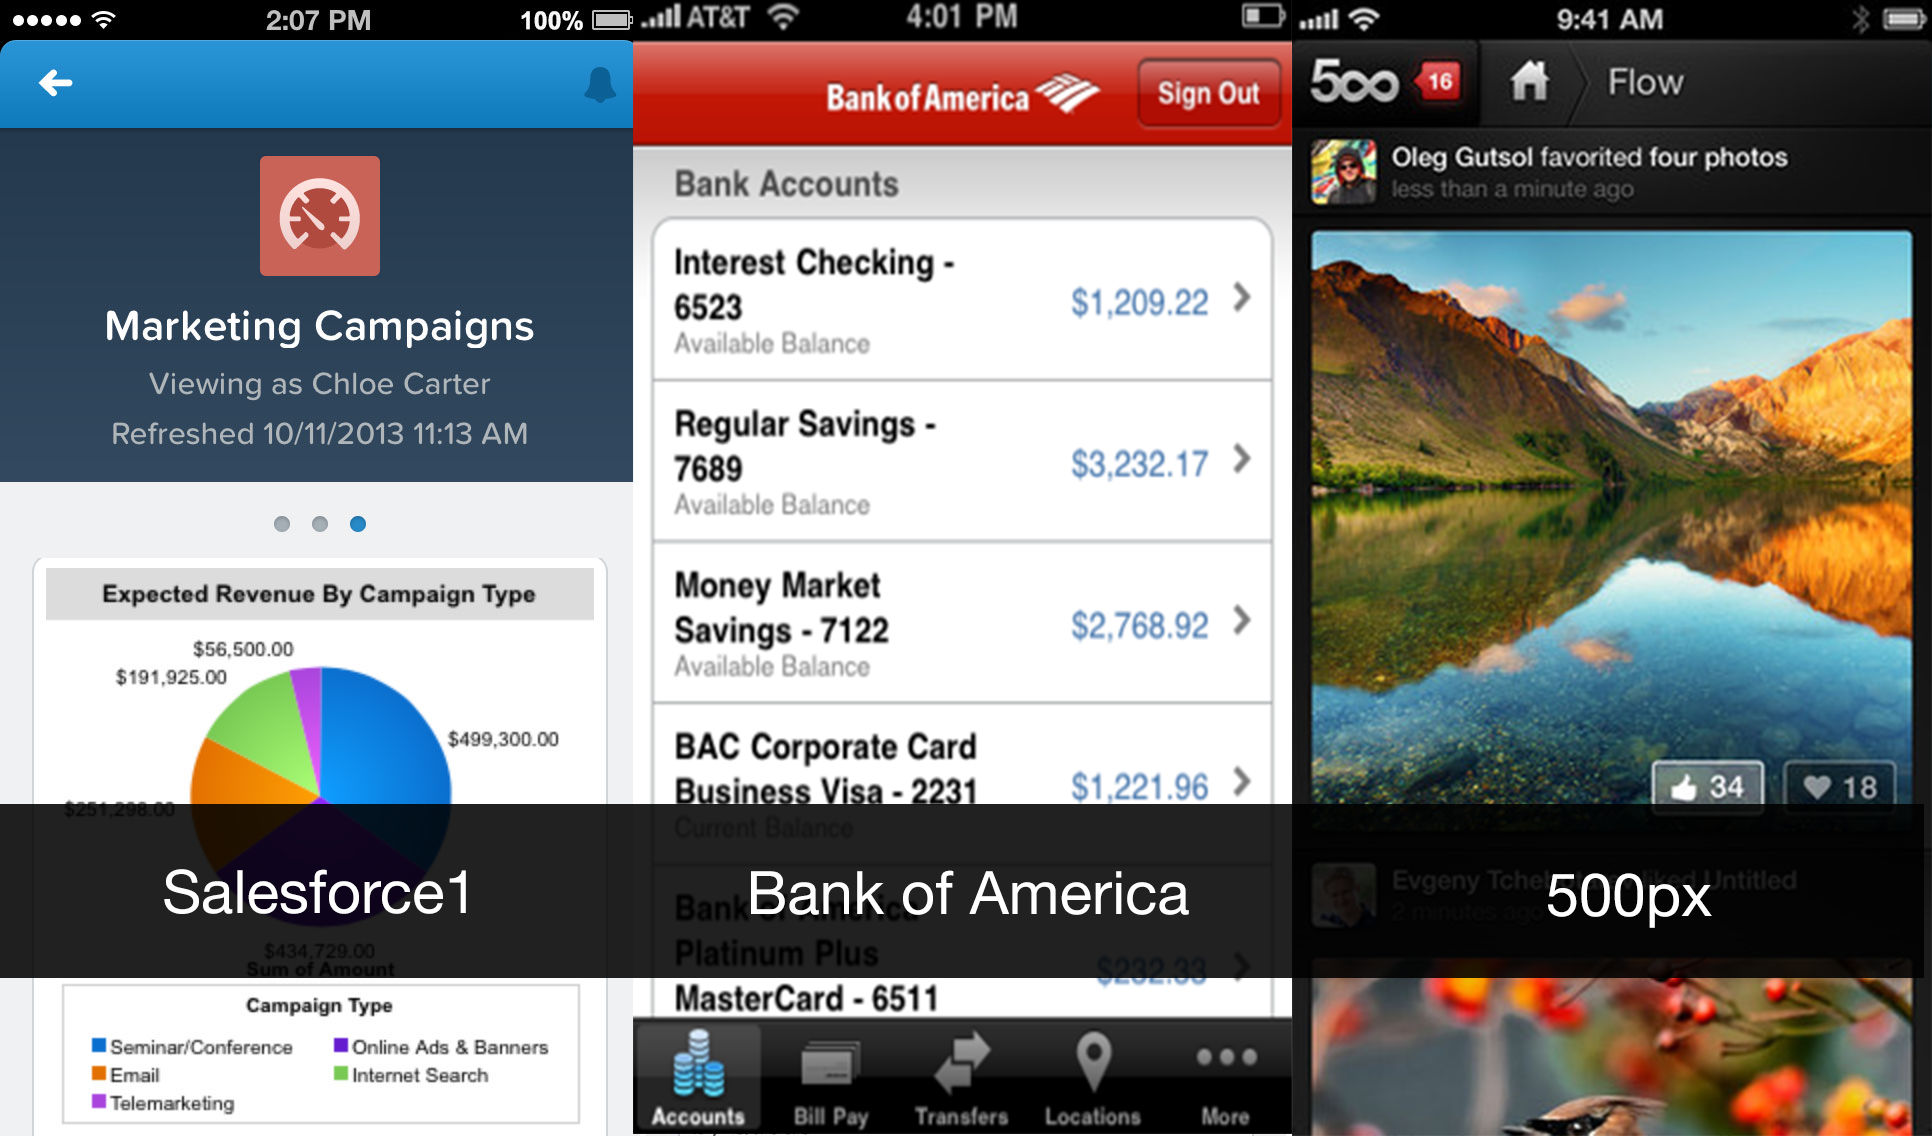 Designing Enterprise Mobile Apps With iOS and Salesforce